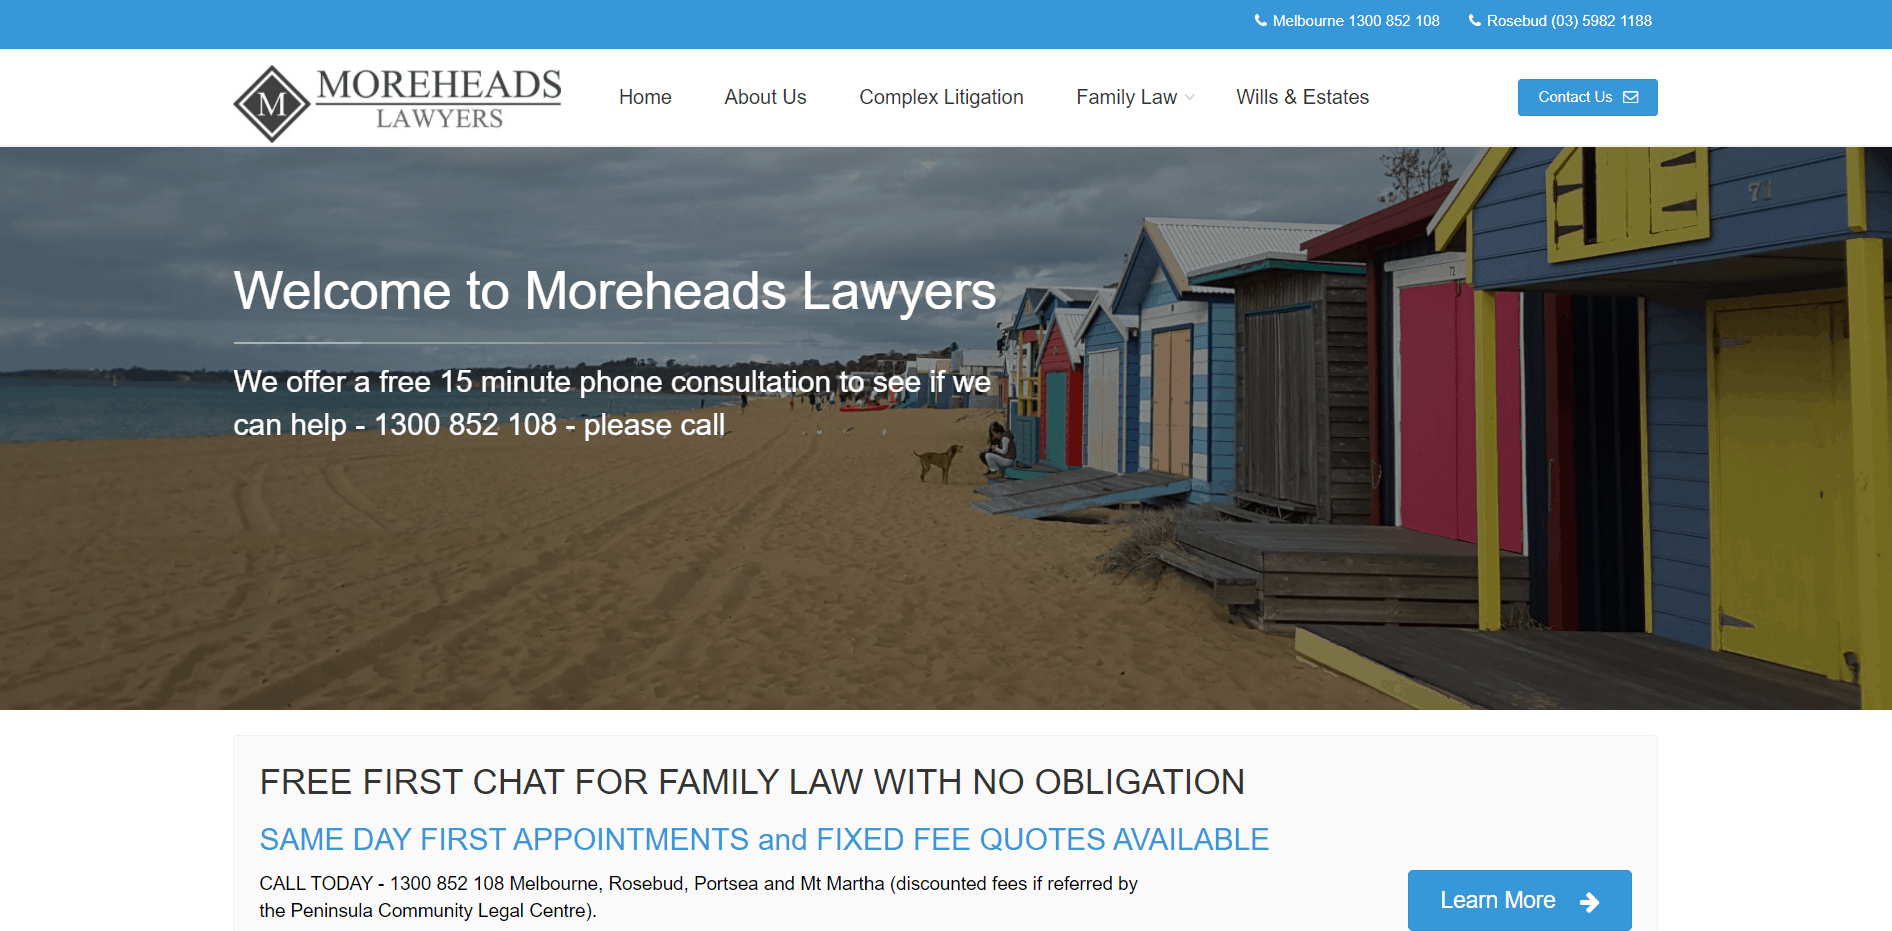 Moreheads Lawyers